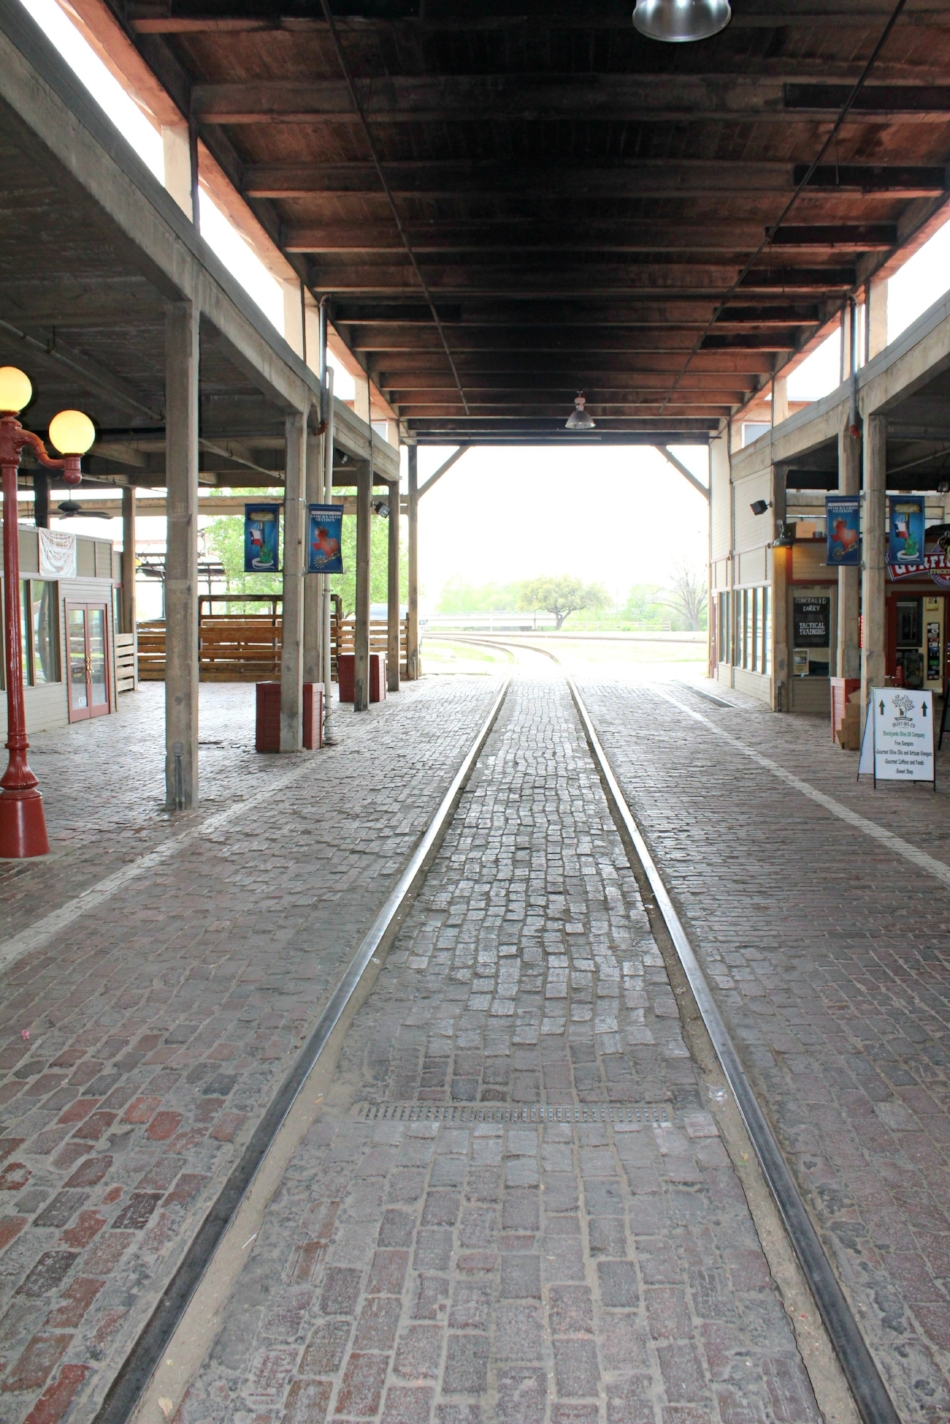 Fort Worth Stockyards 5.0.jpg